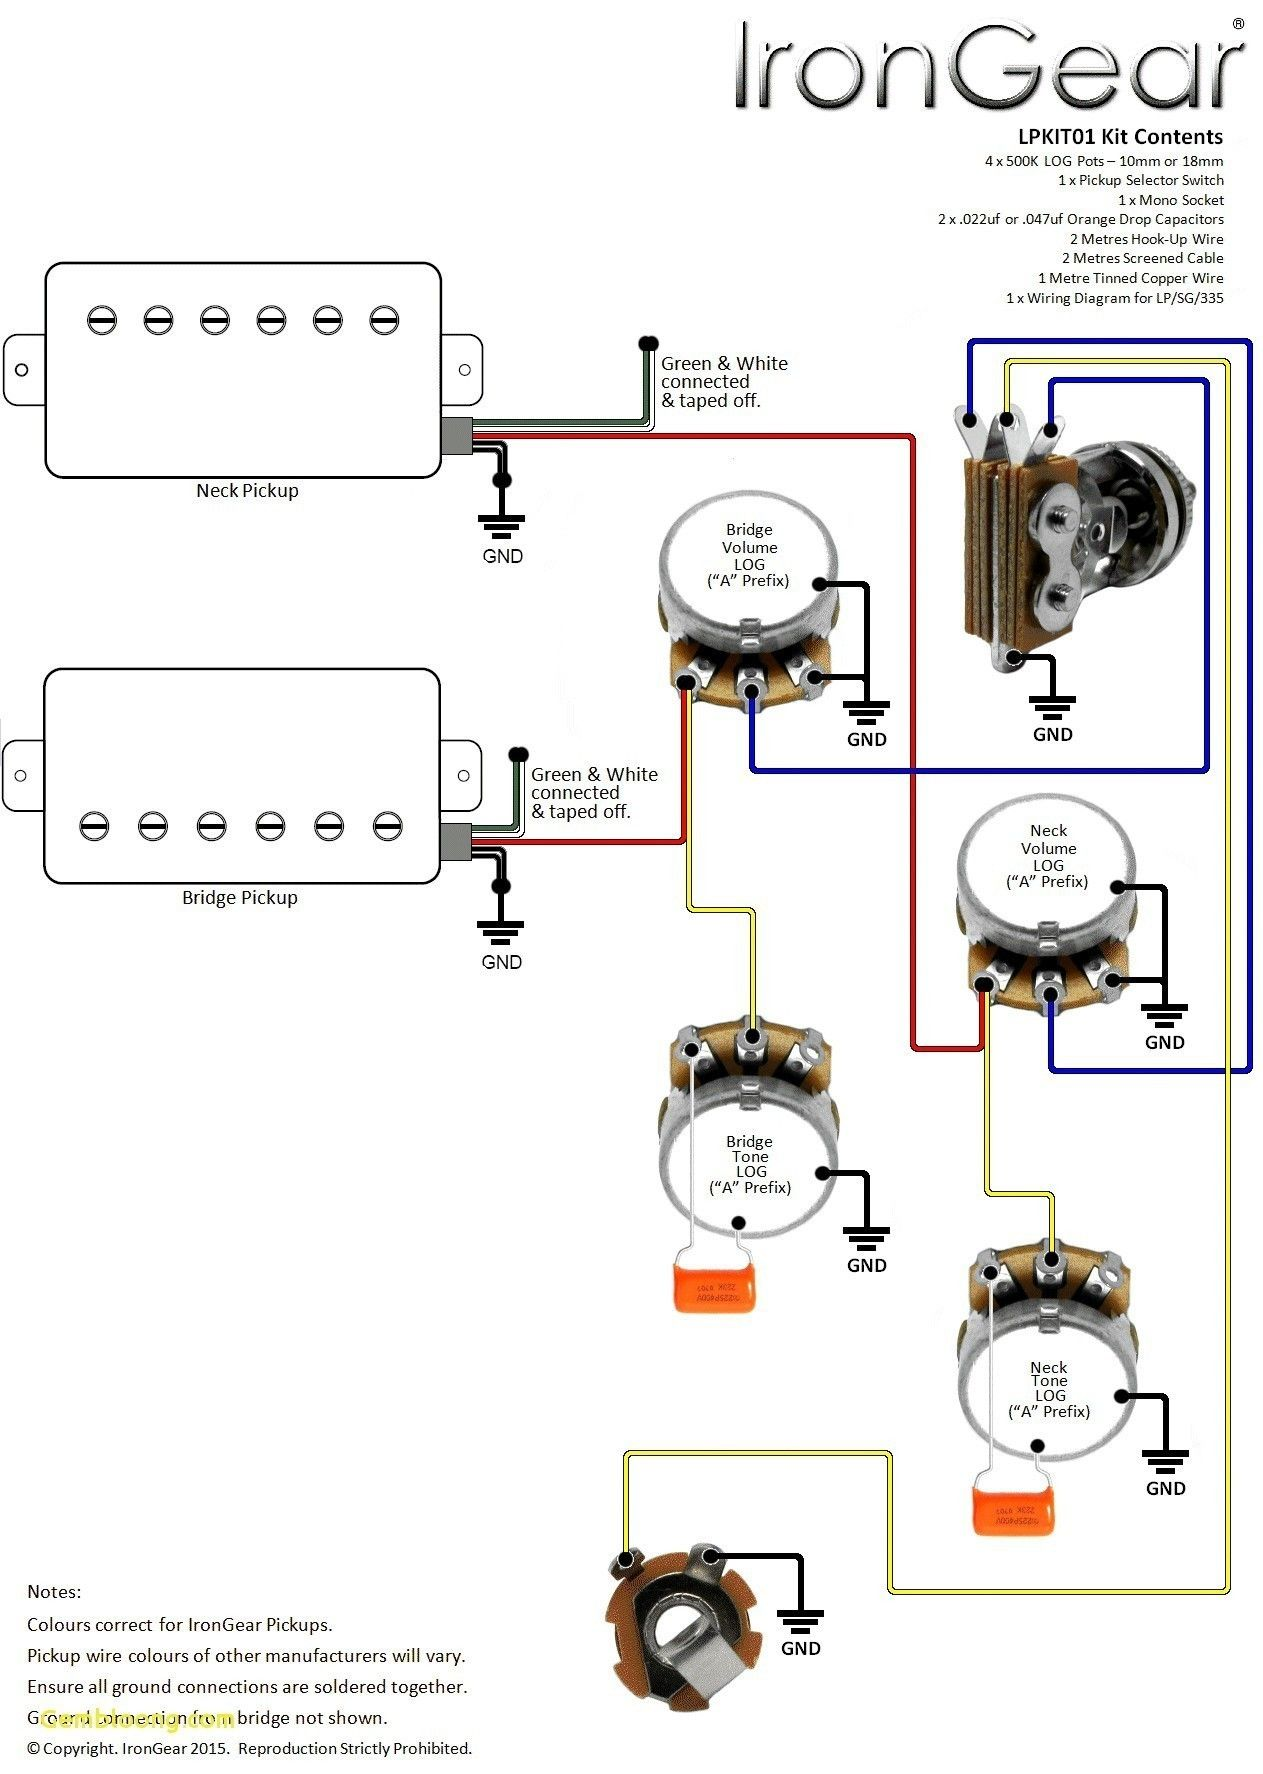 small resolution of unique gibson sg faded wiring diagram diagram diagramsample diagramtemplate wiringdiagram diagramchart worksheet worksheettemplate